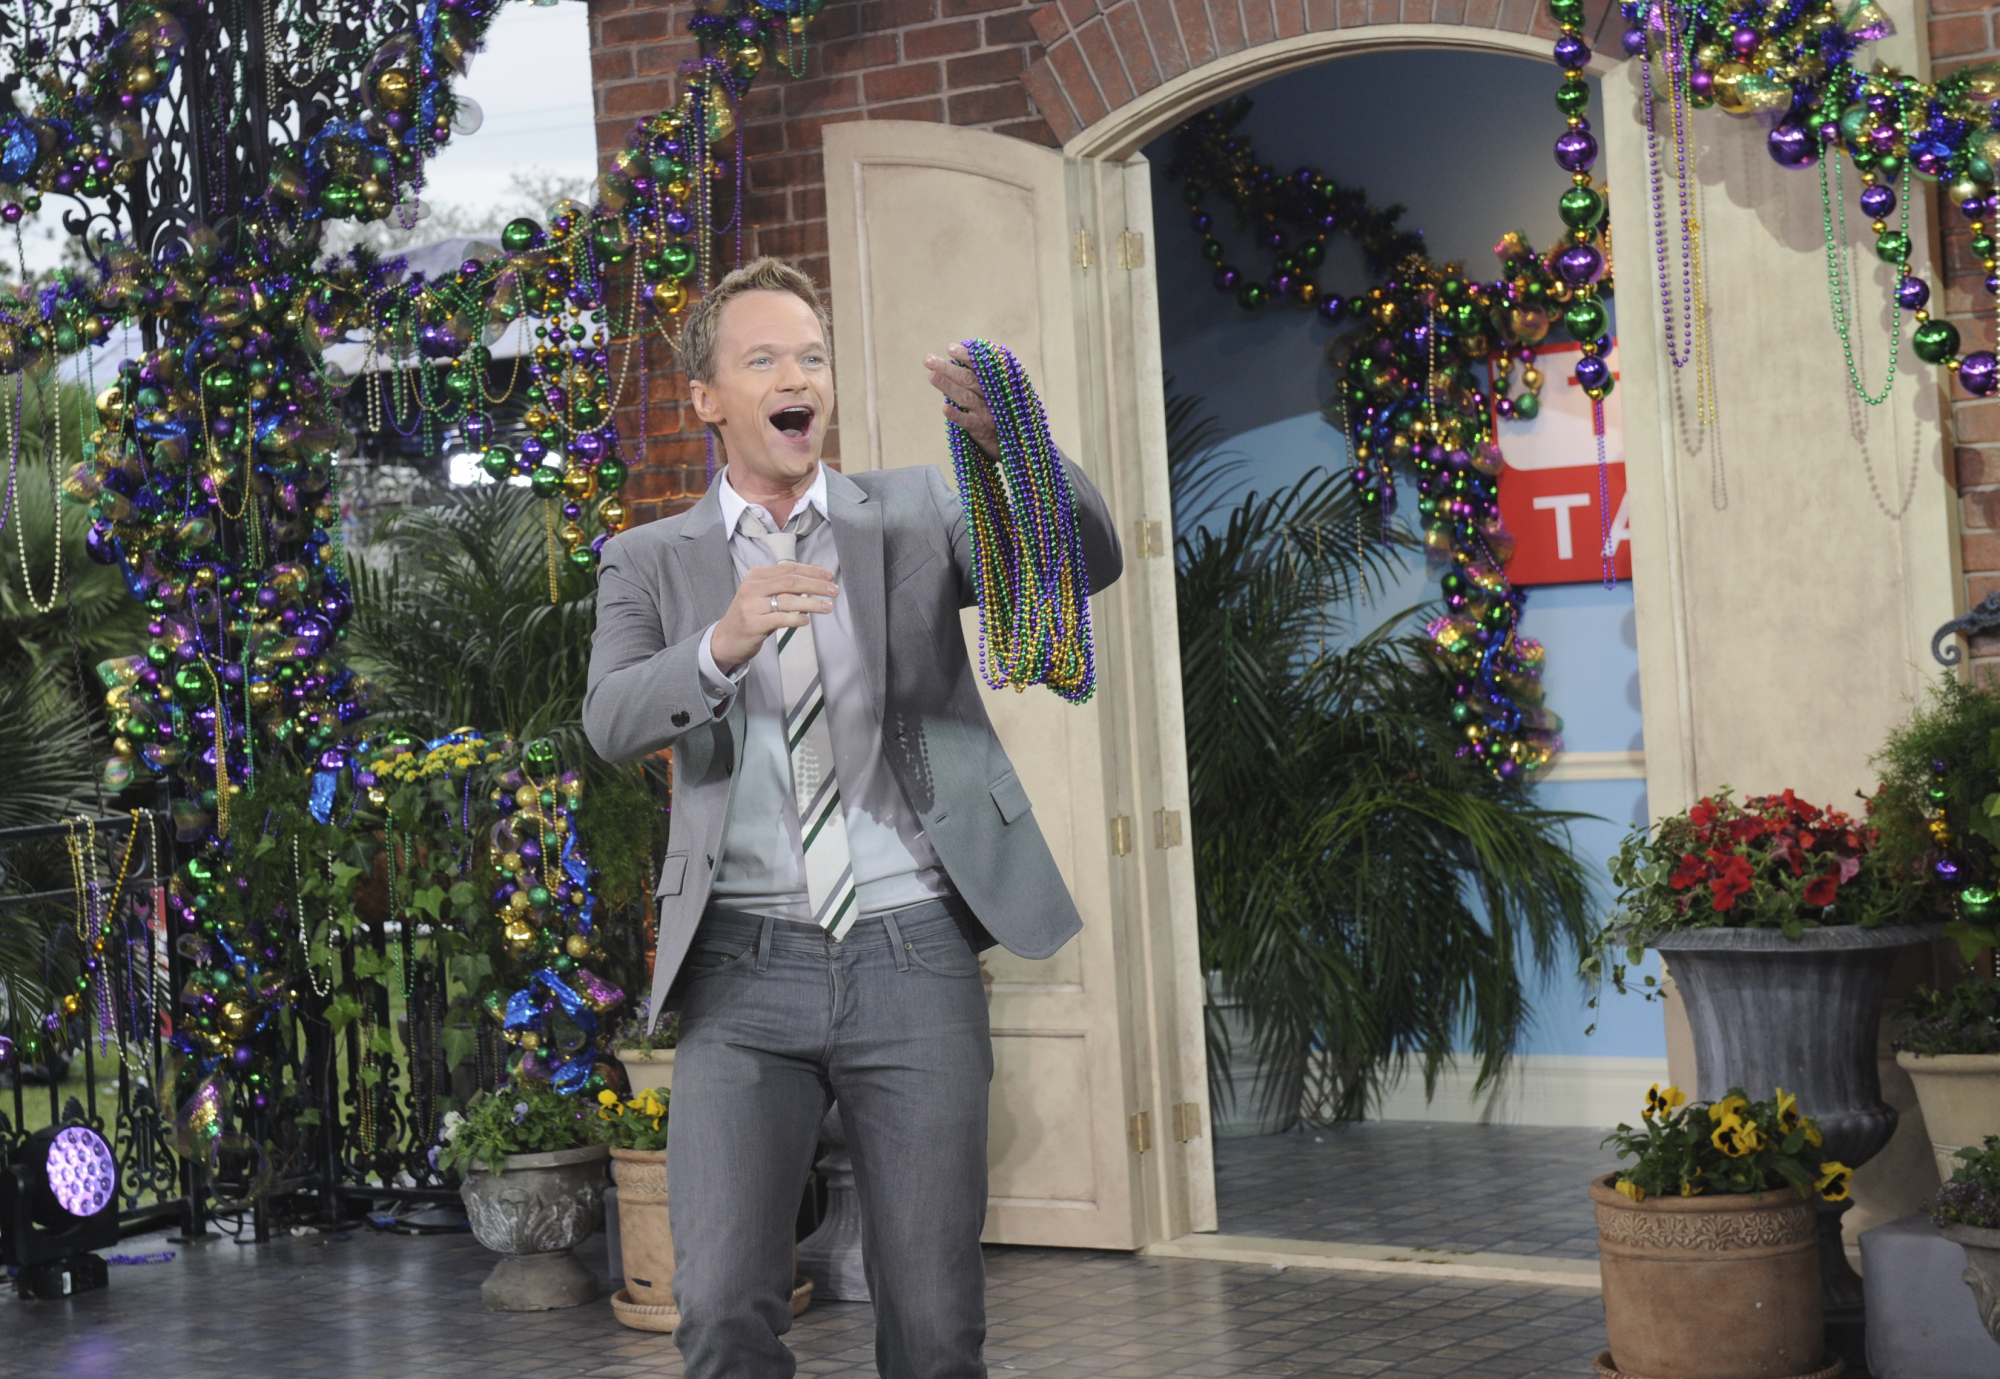 NPH with Beads